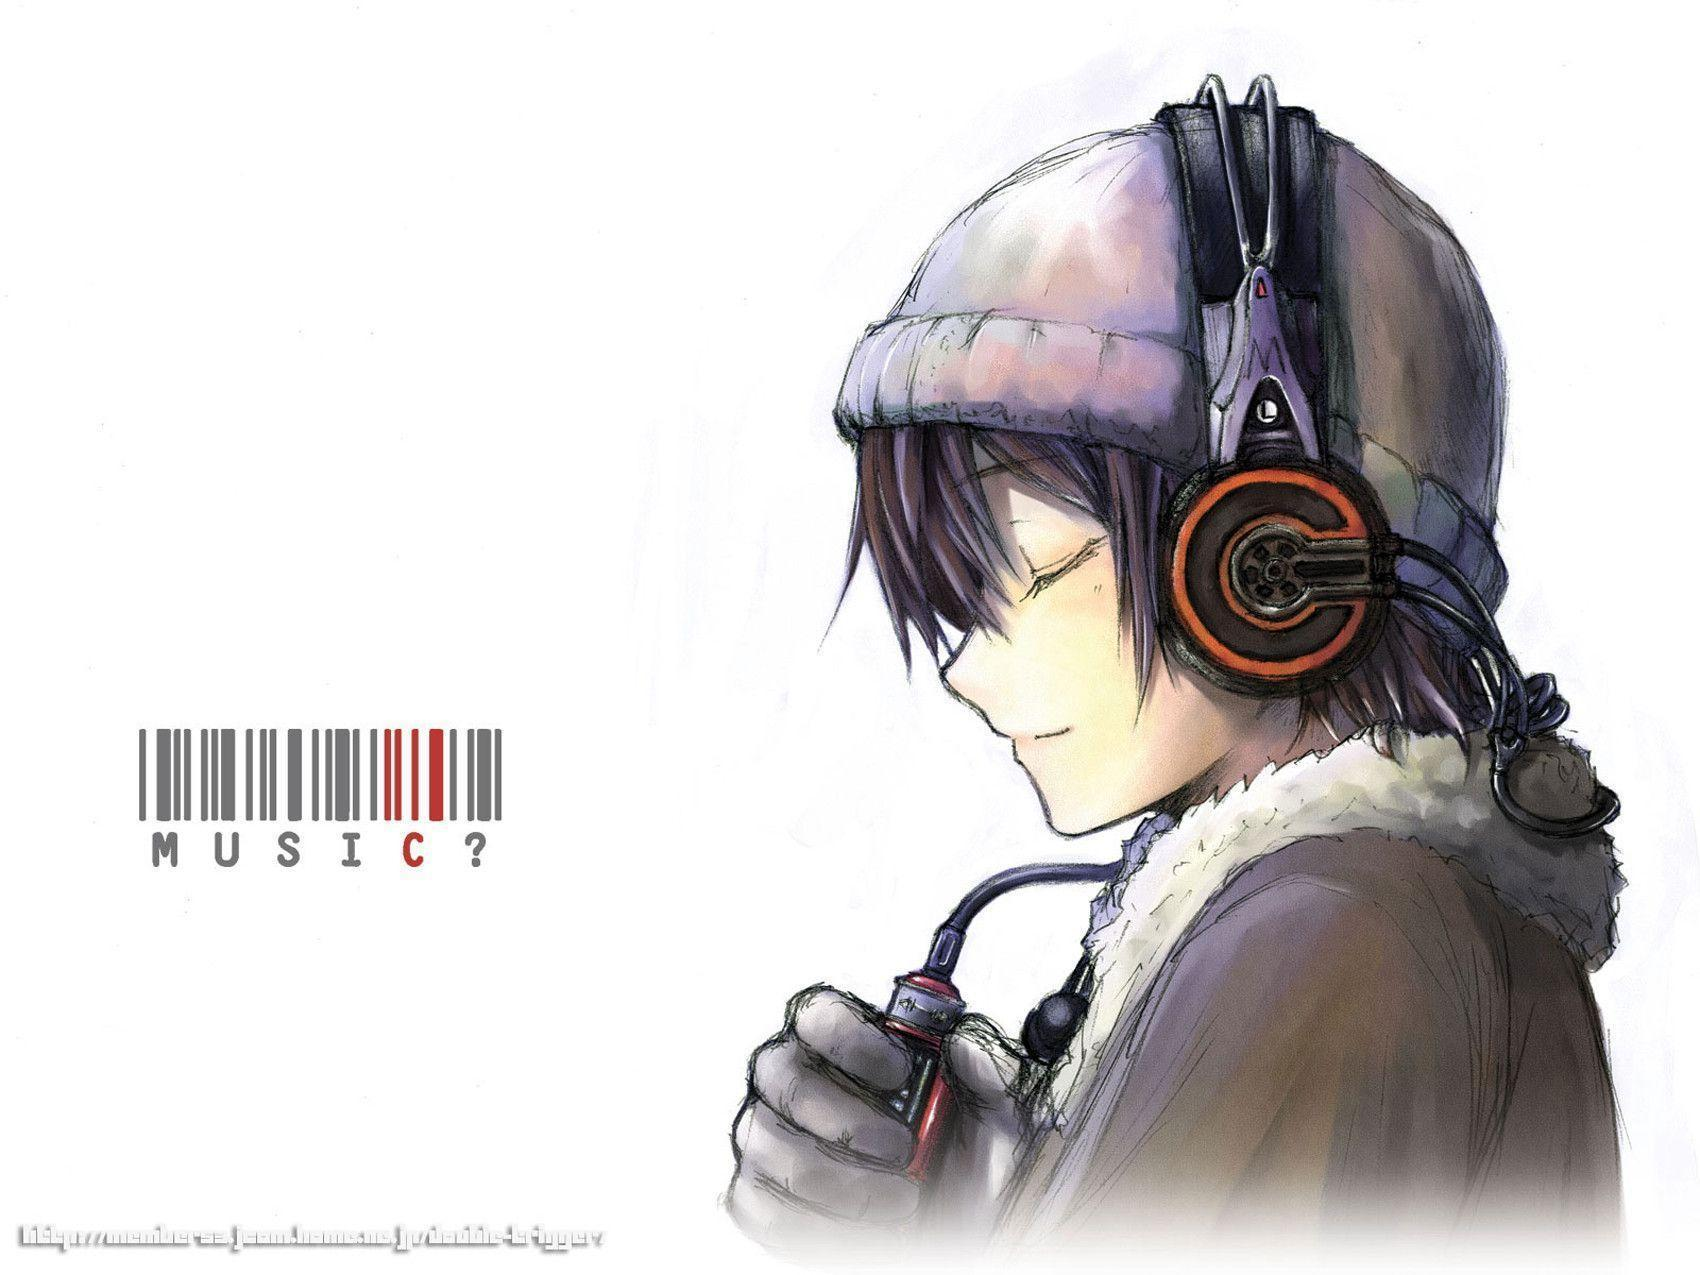 Anime Boy With Headphones Wallpapers Top Free Anime Boy With Headphones Backgrounds Wallpaperaccess